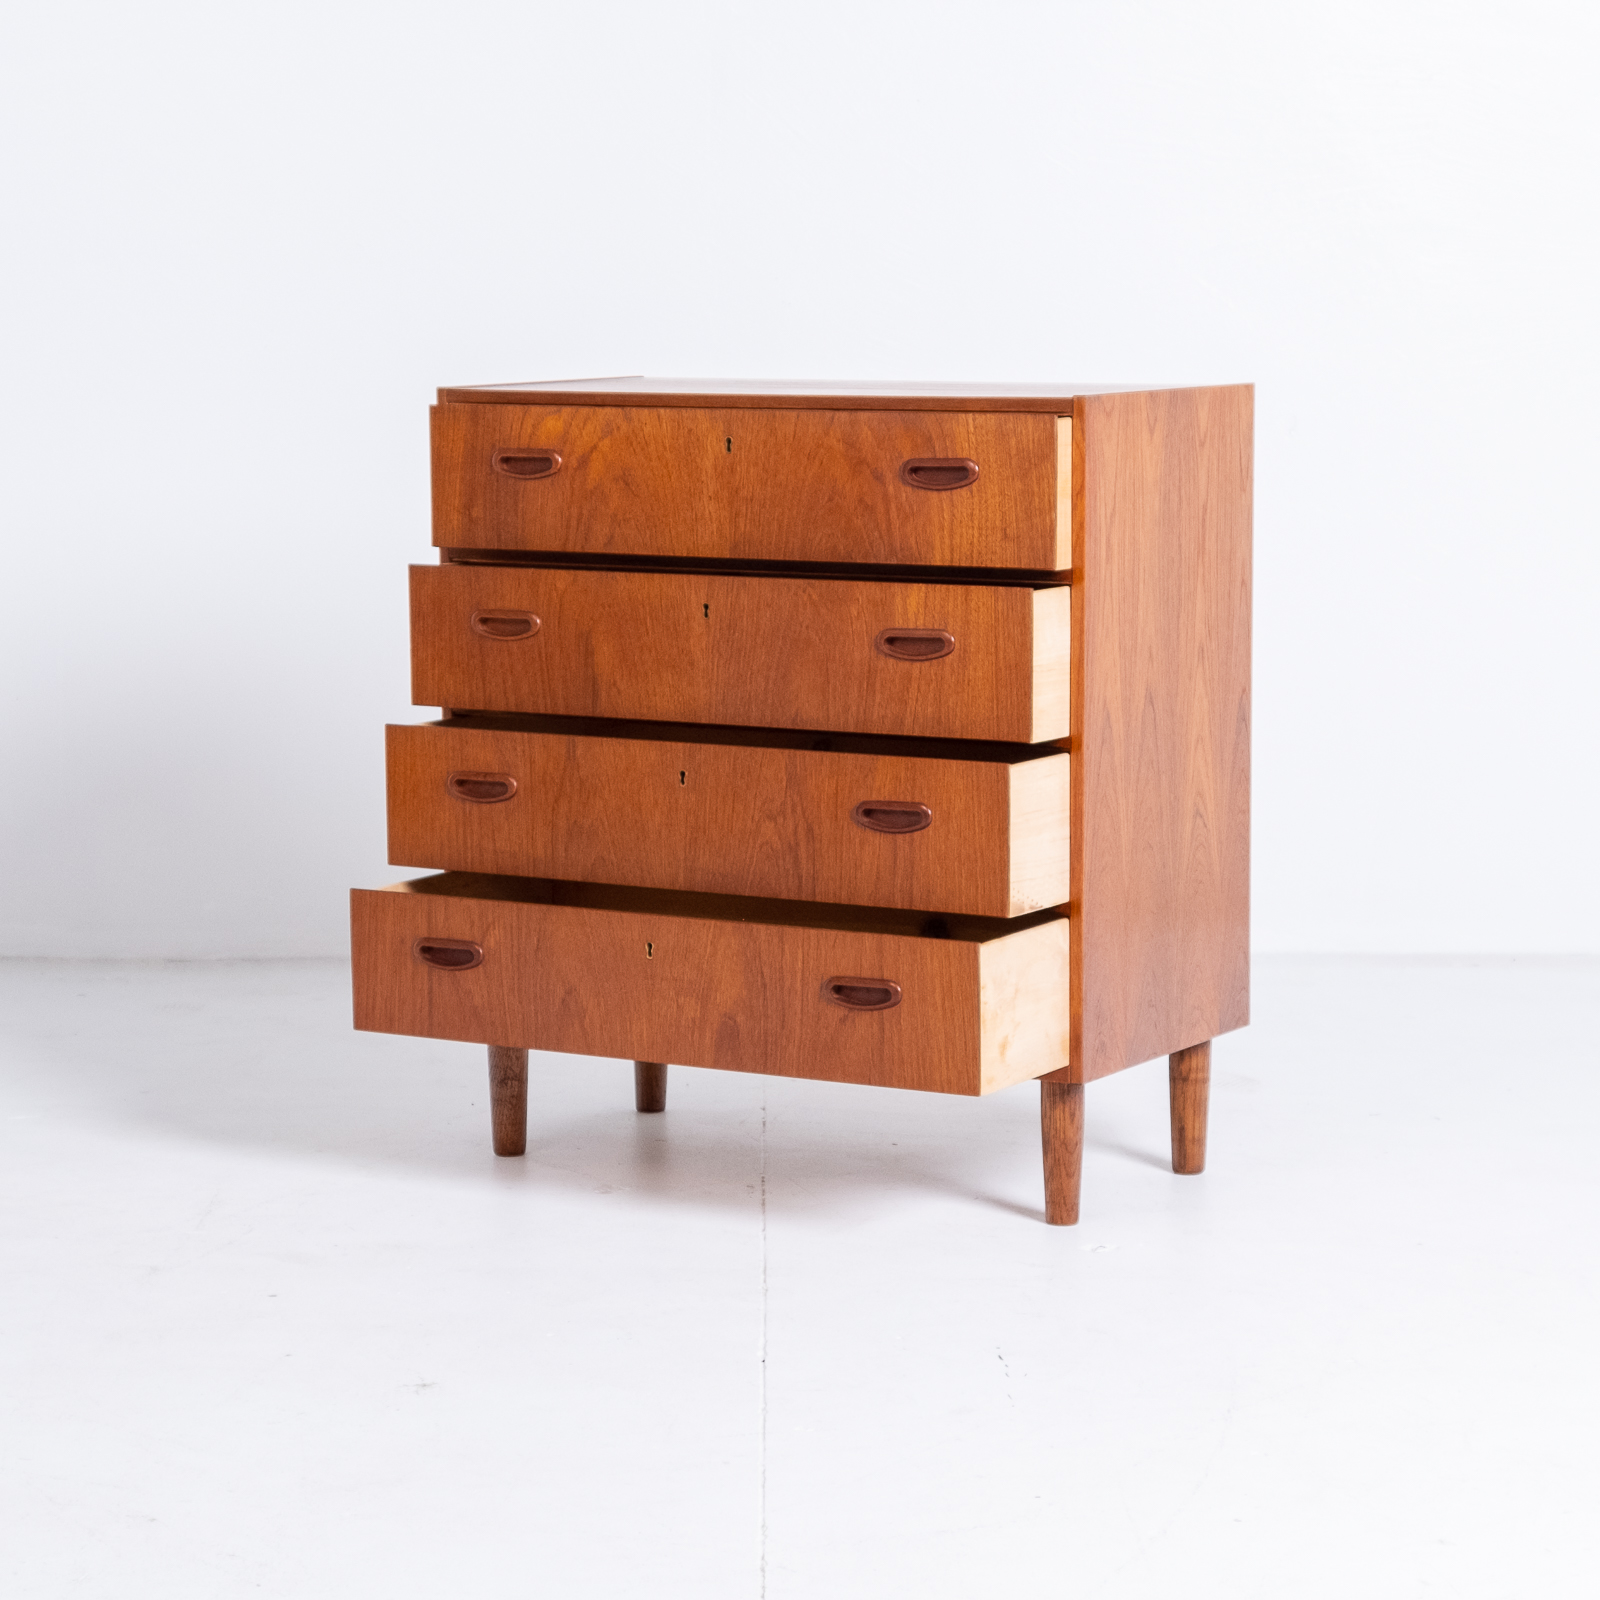 Chest Of Drawers In Teak, 1960s, Denmark2